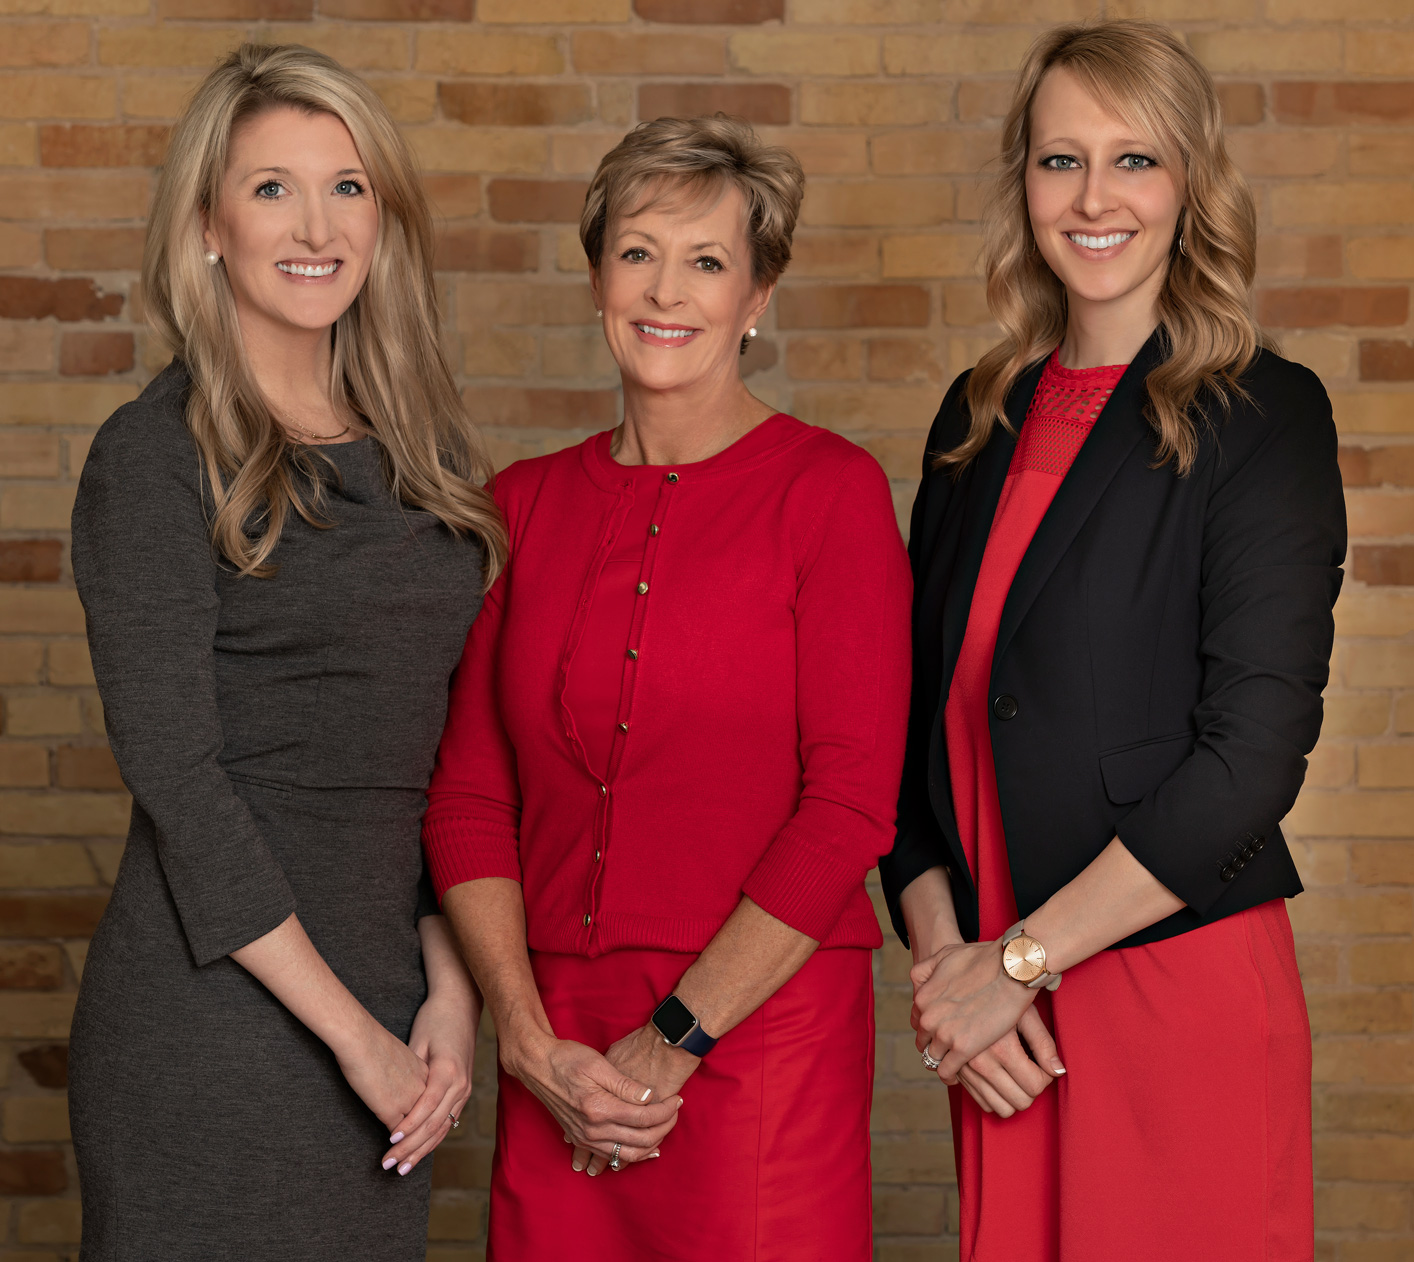 group photo of women for business website